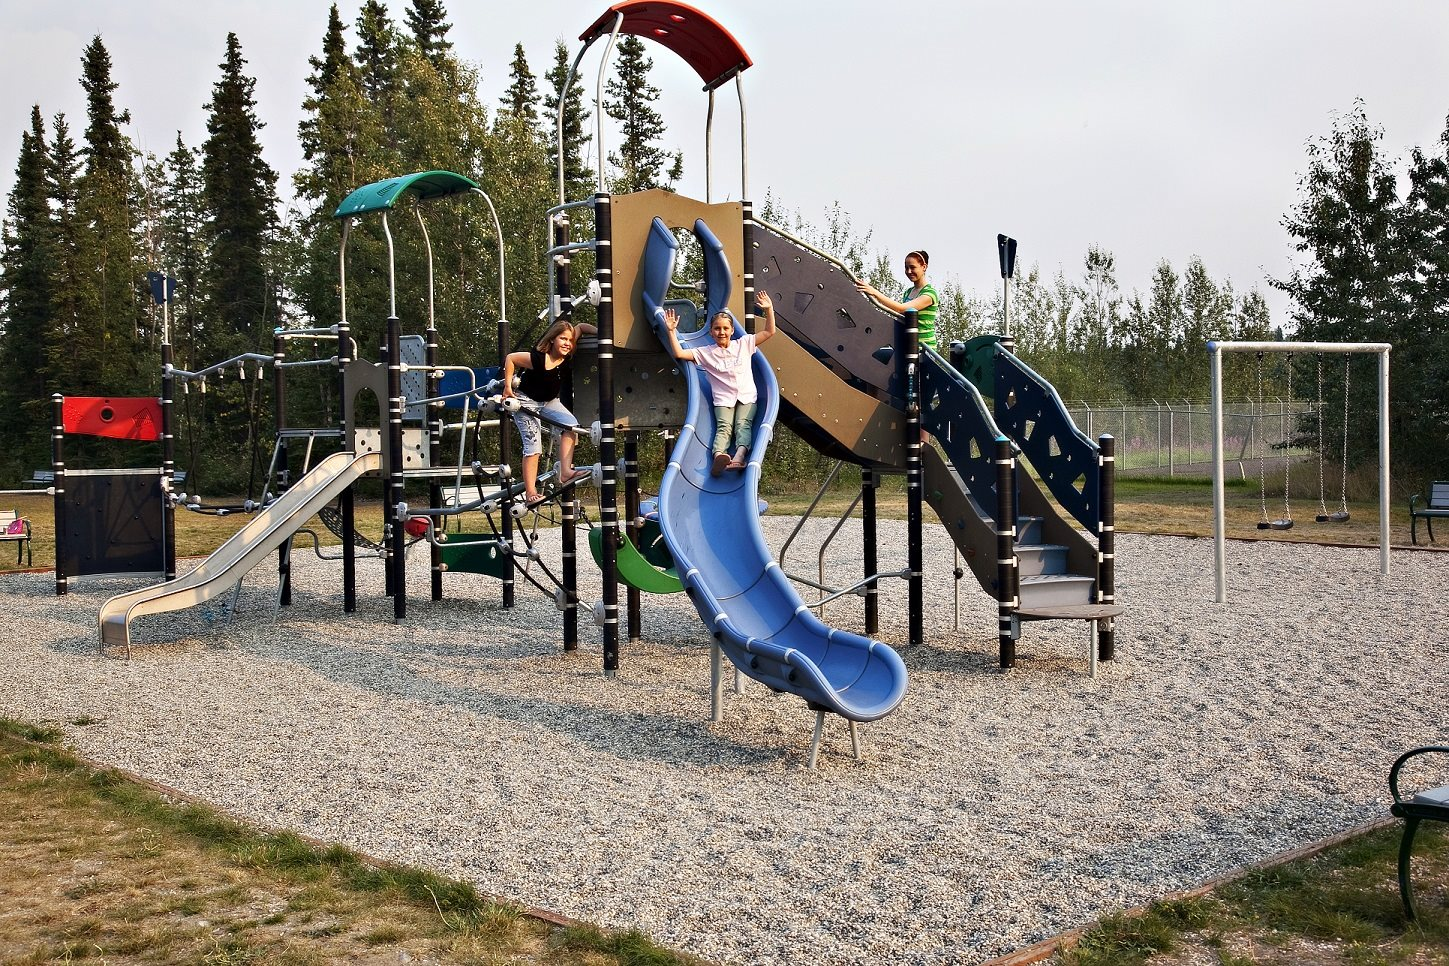 Playground at Birchwood Homes, Fairbanks, AK,99701